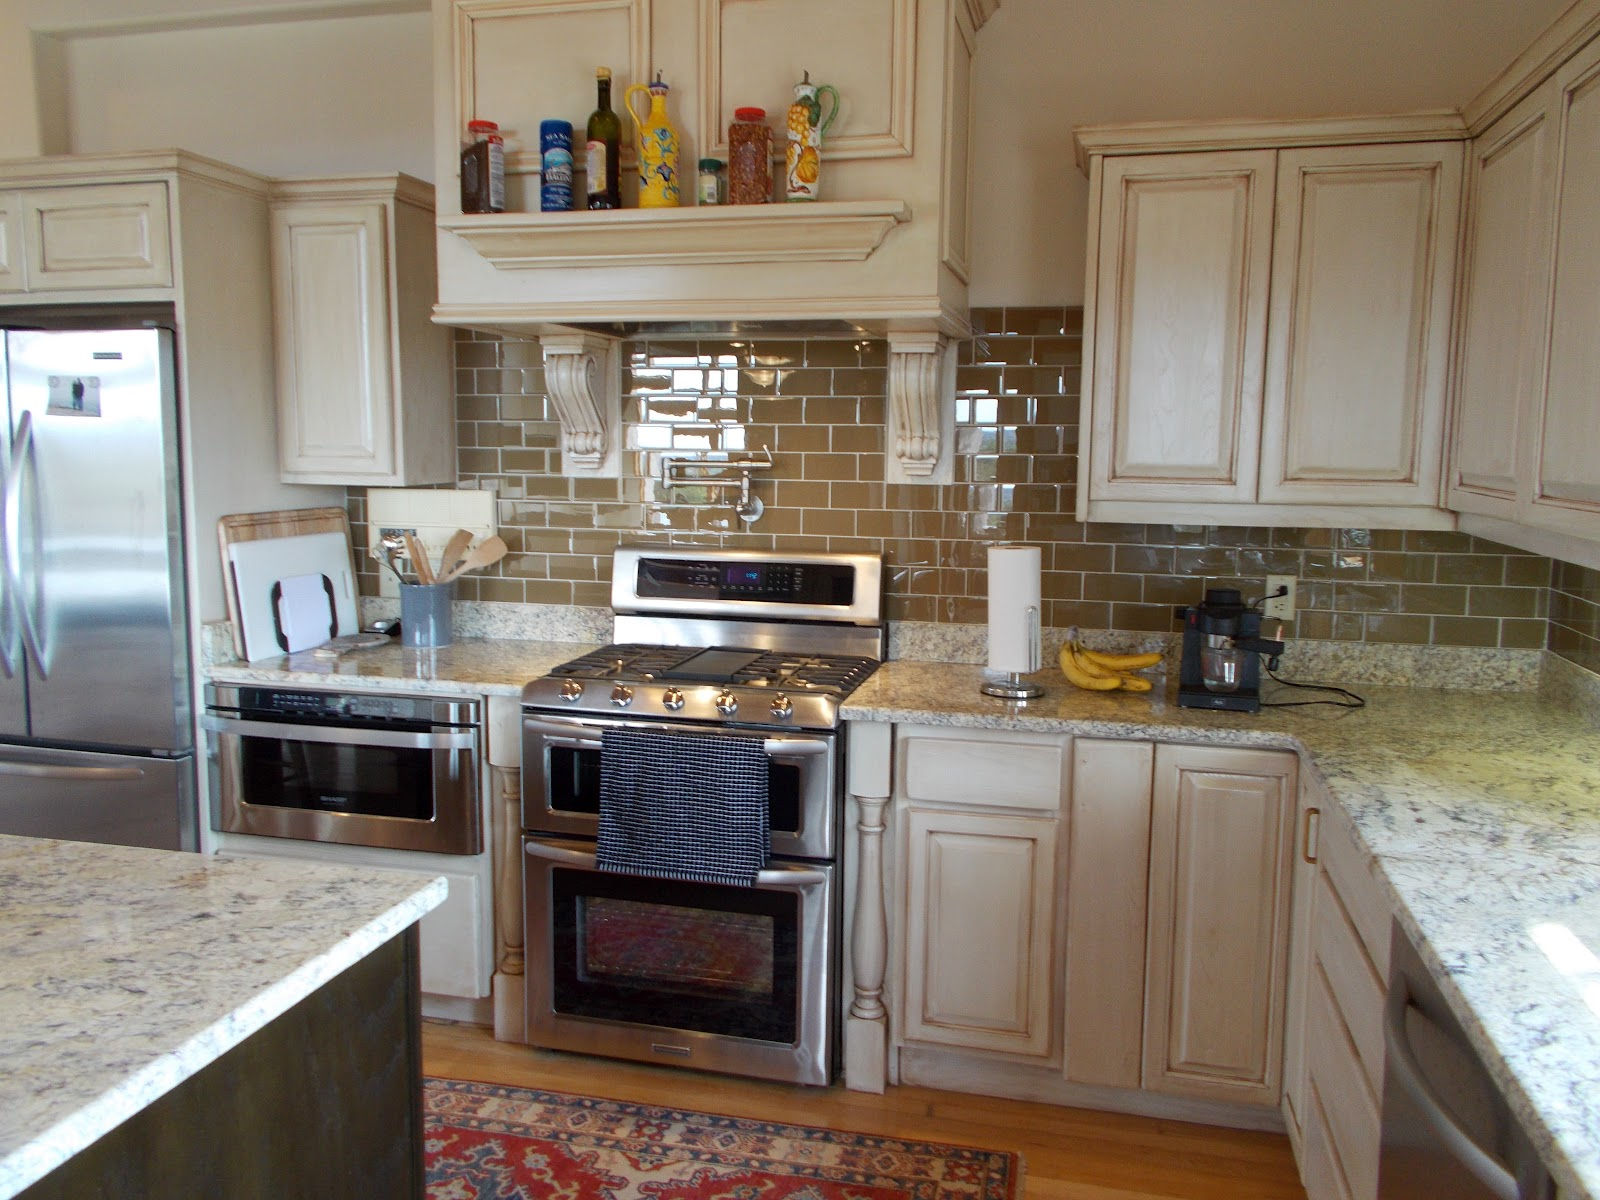 White Kitchen Cabinets Brown Countertops with Backsplash